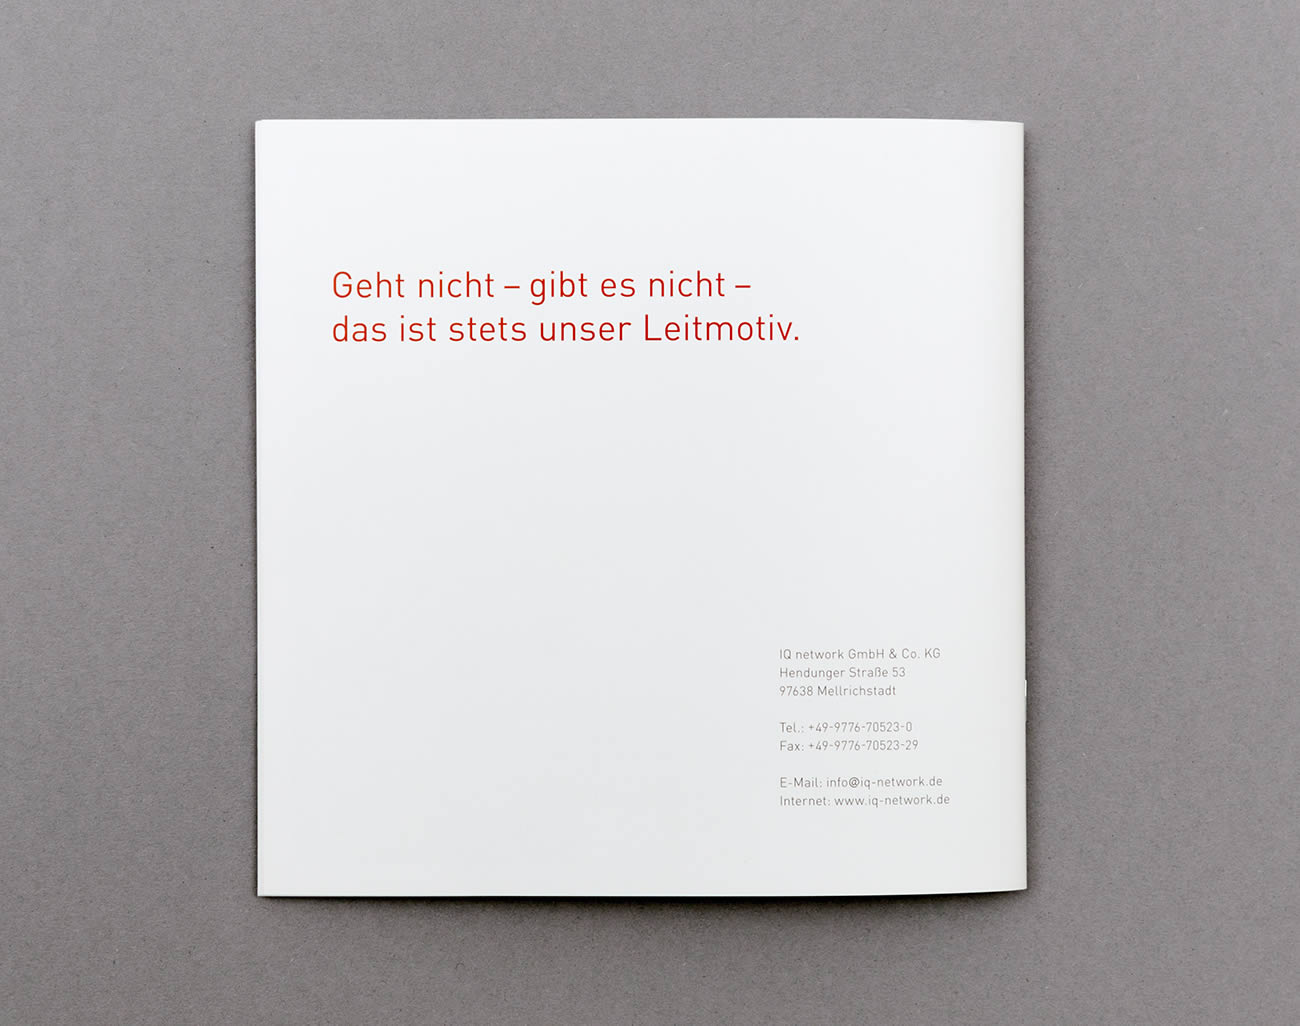 Petermeyer Zimmerer, Print, IQ Network, Imagebroschüre, Design by pz